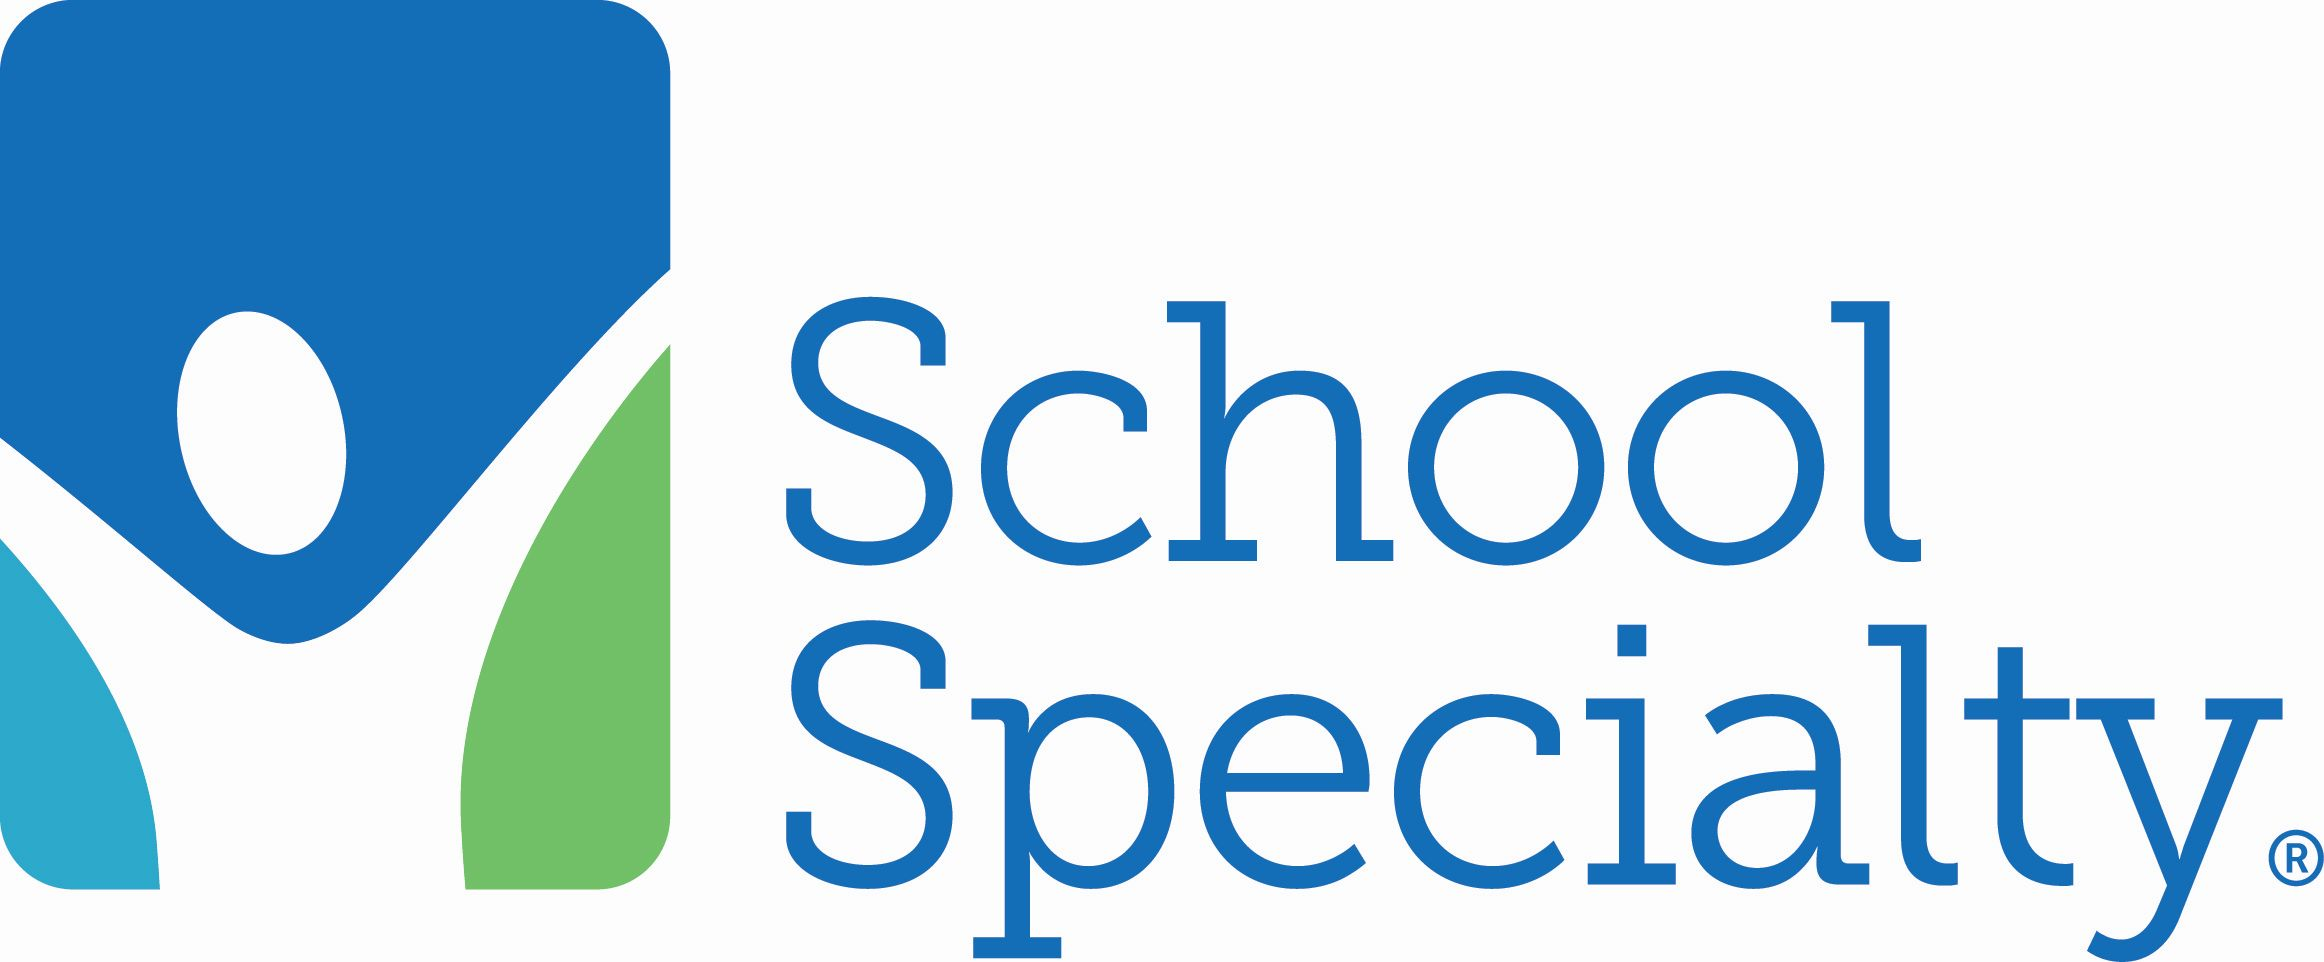 School Specialty, Inc. logo